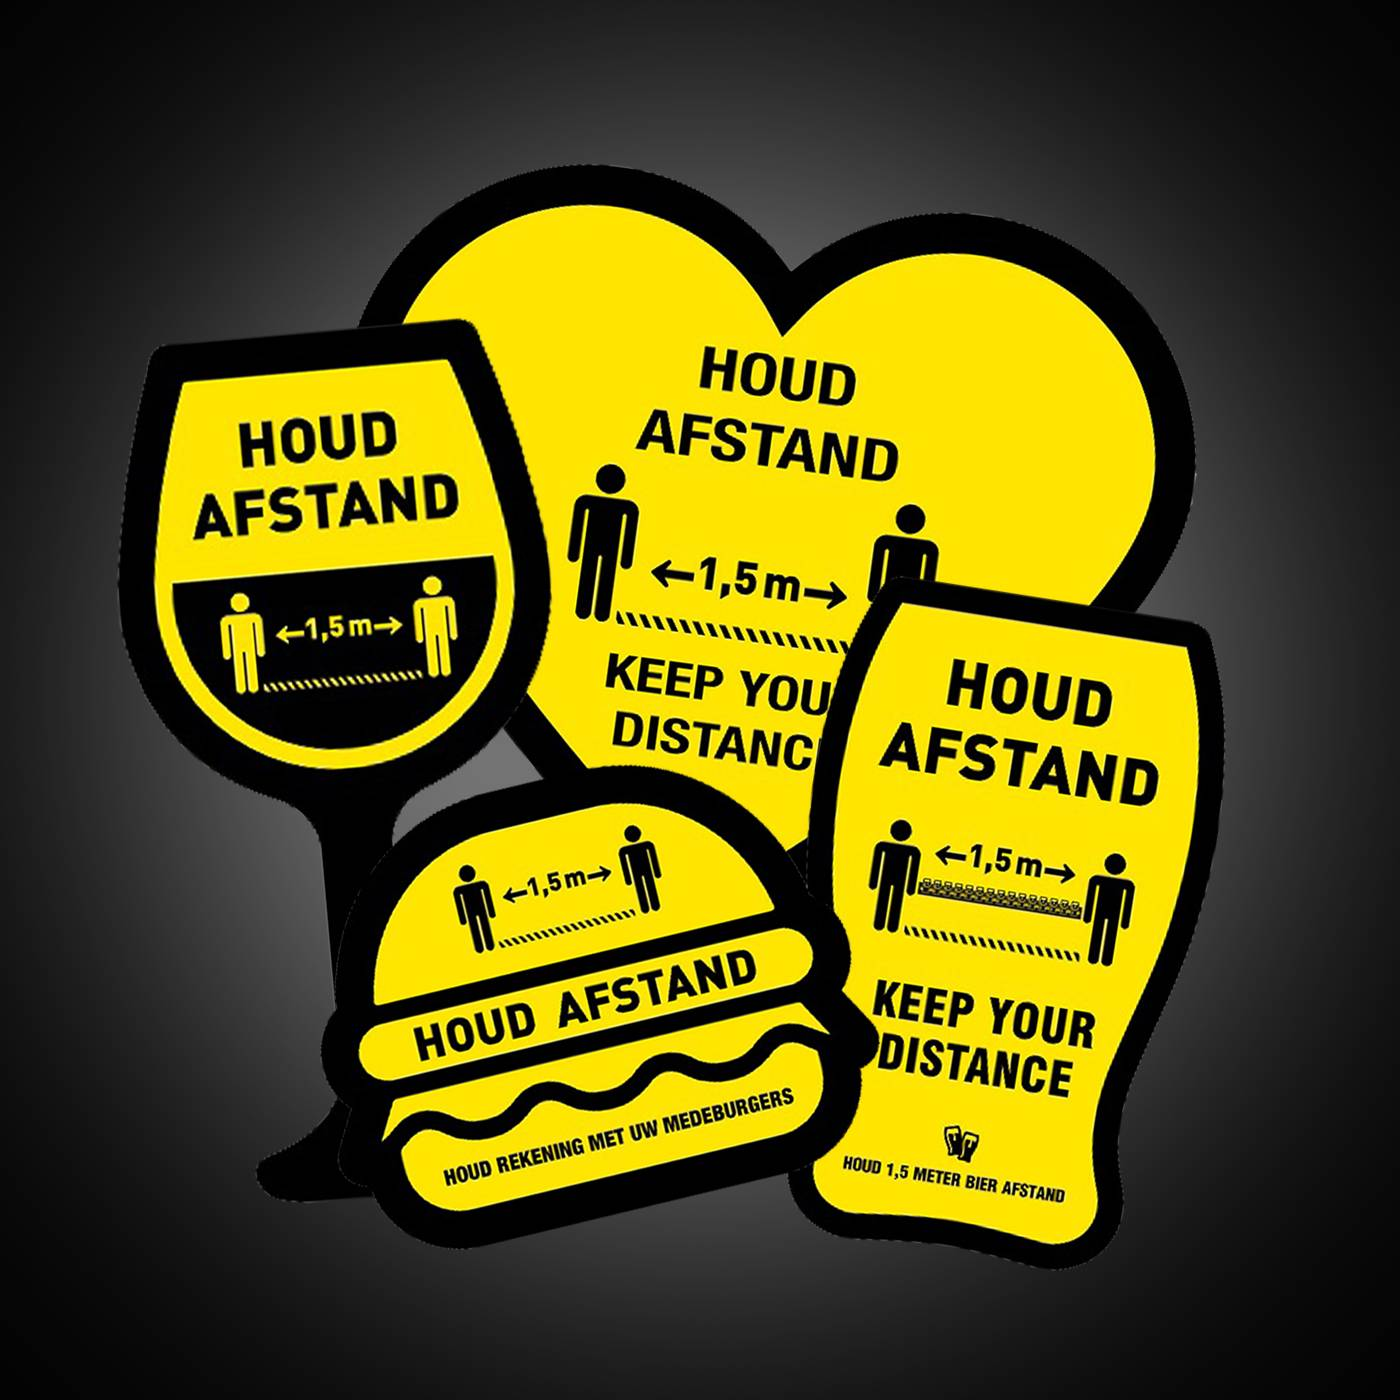 COVID-19 vloerstickers - Houd afstand